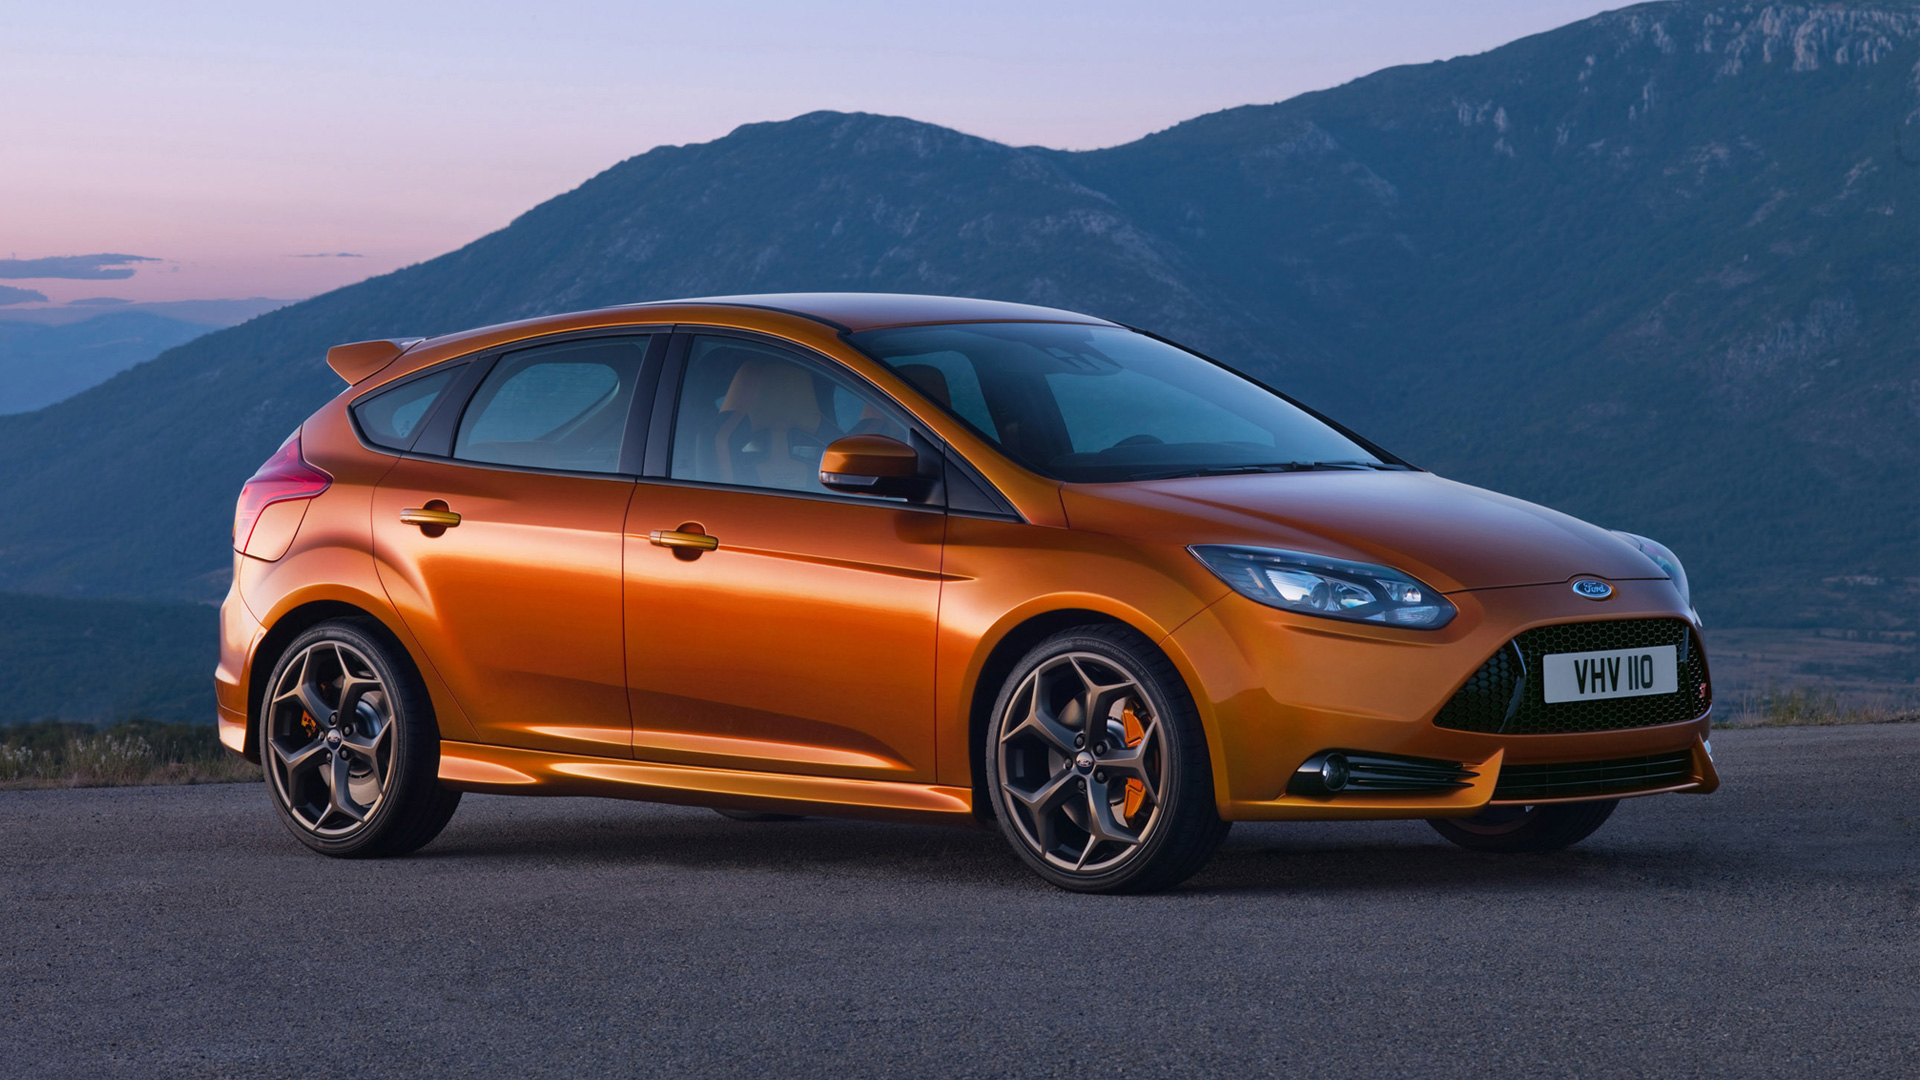 Ford Focus ST 2012 HD Wallpapers 1920x1080